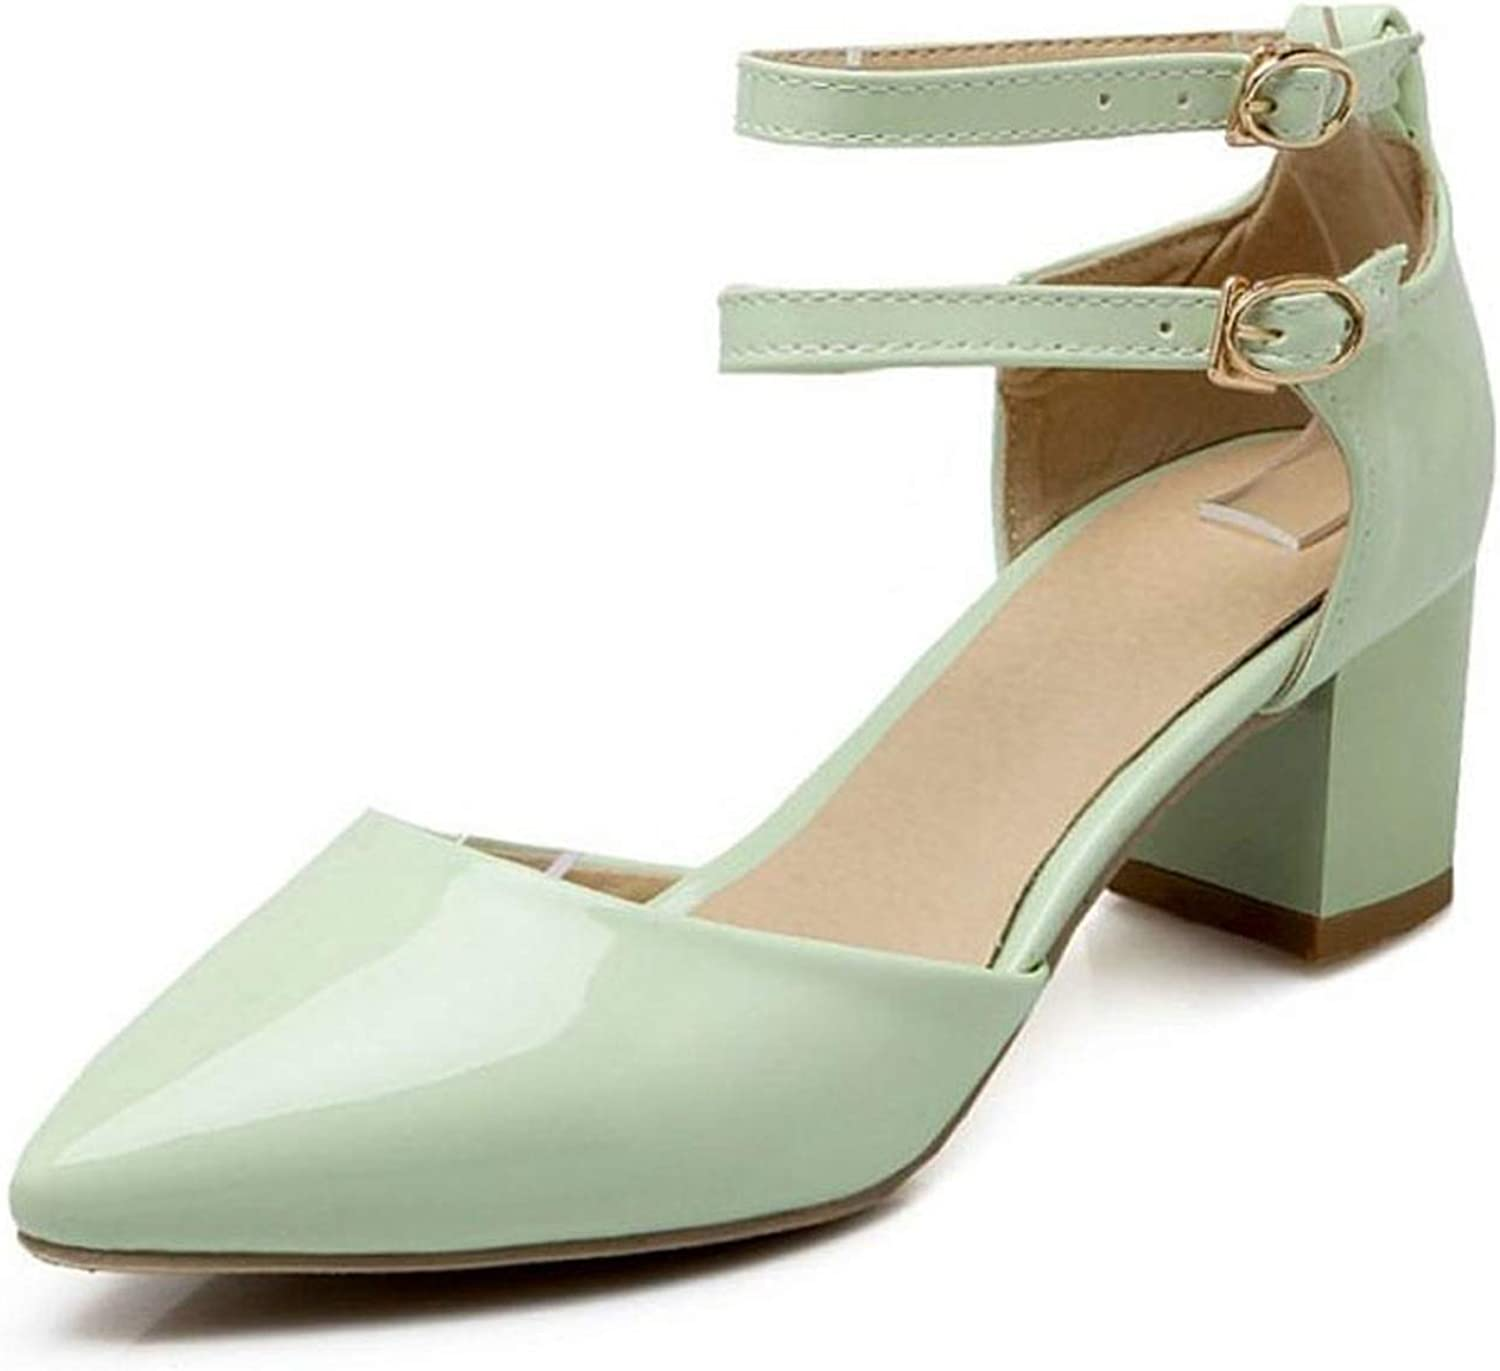 Fairly Elegant High Heel Ankle Strap Pointed Toe Thick Heel Summer Party shoes Sandal,Green,10